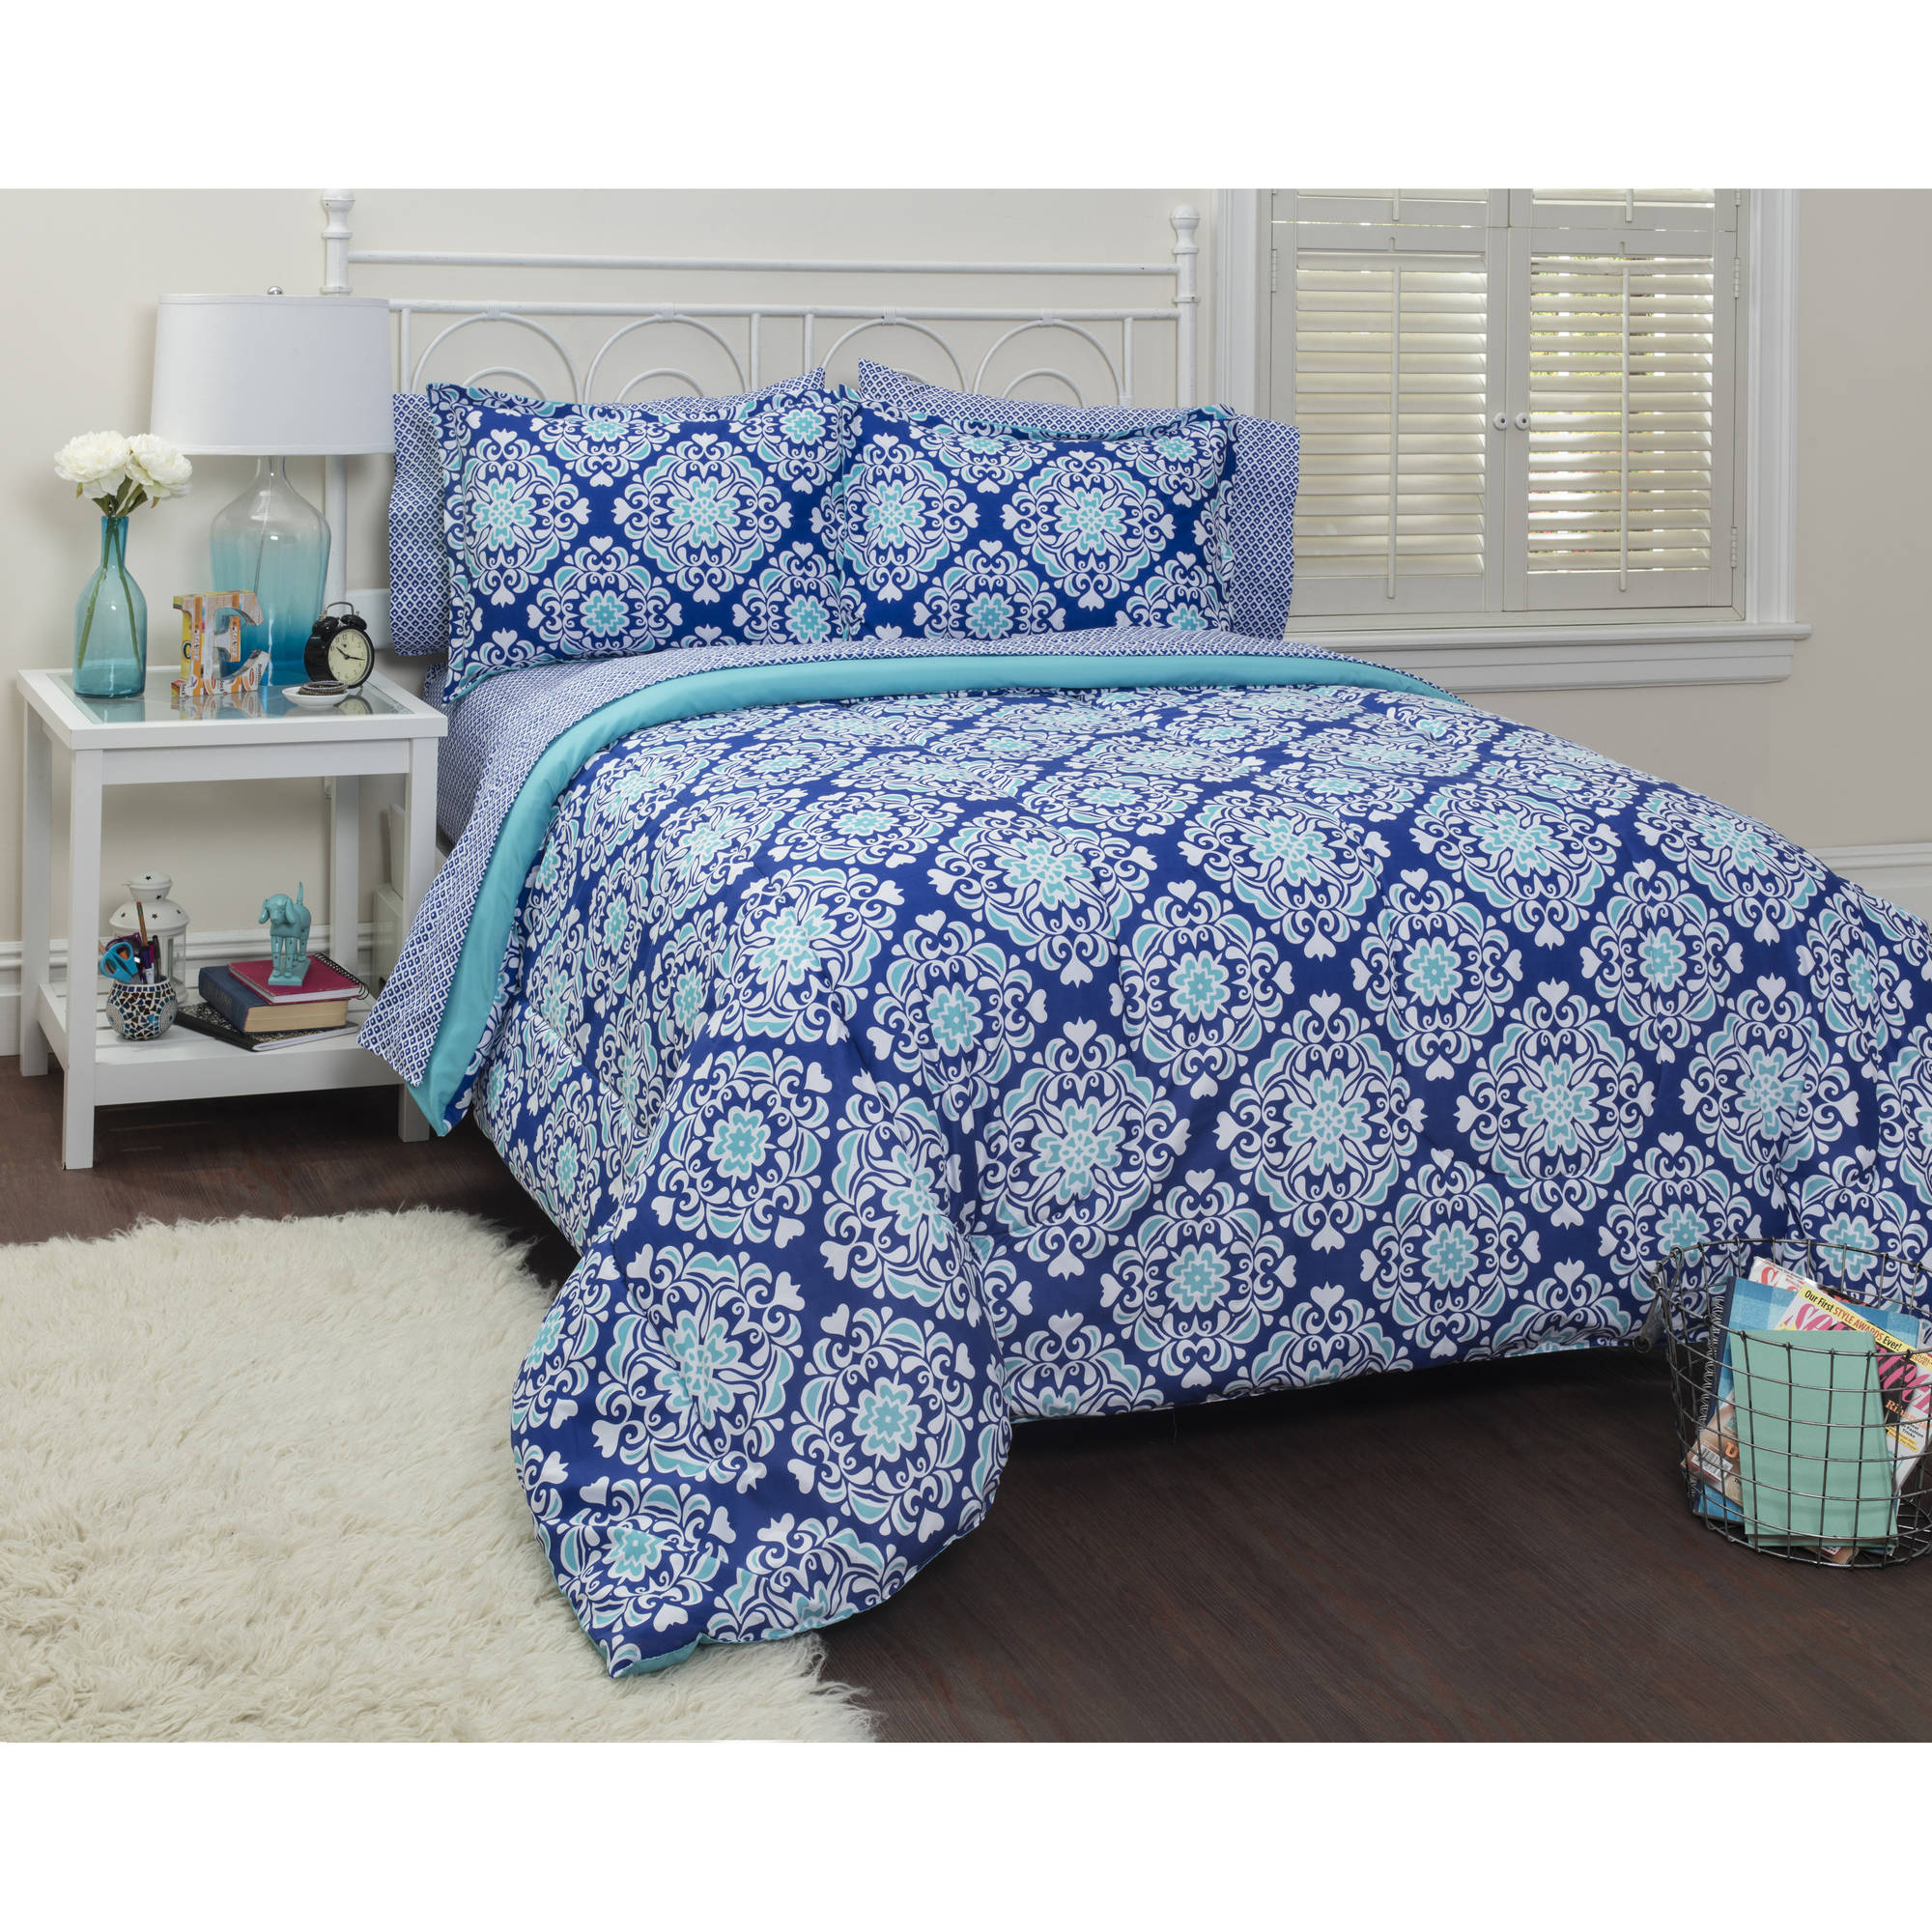 your zone jenna bed-in-a-bag bedding set